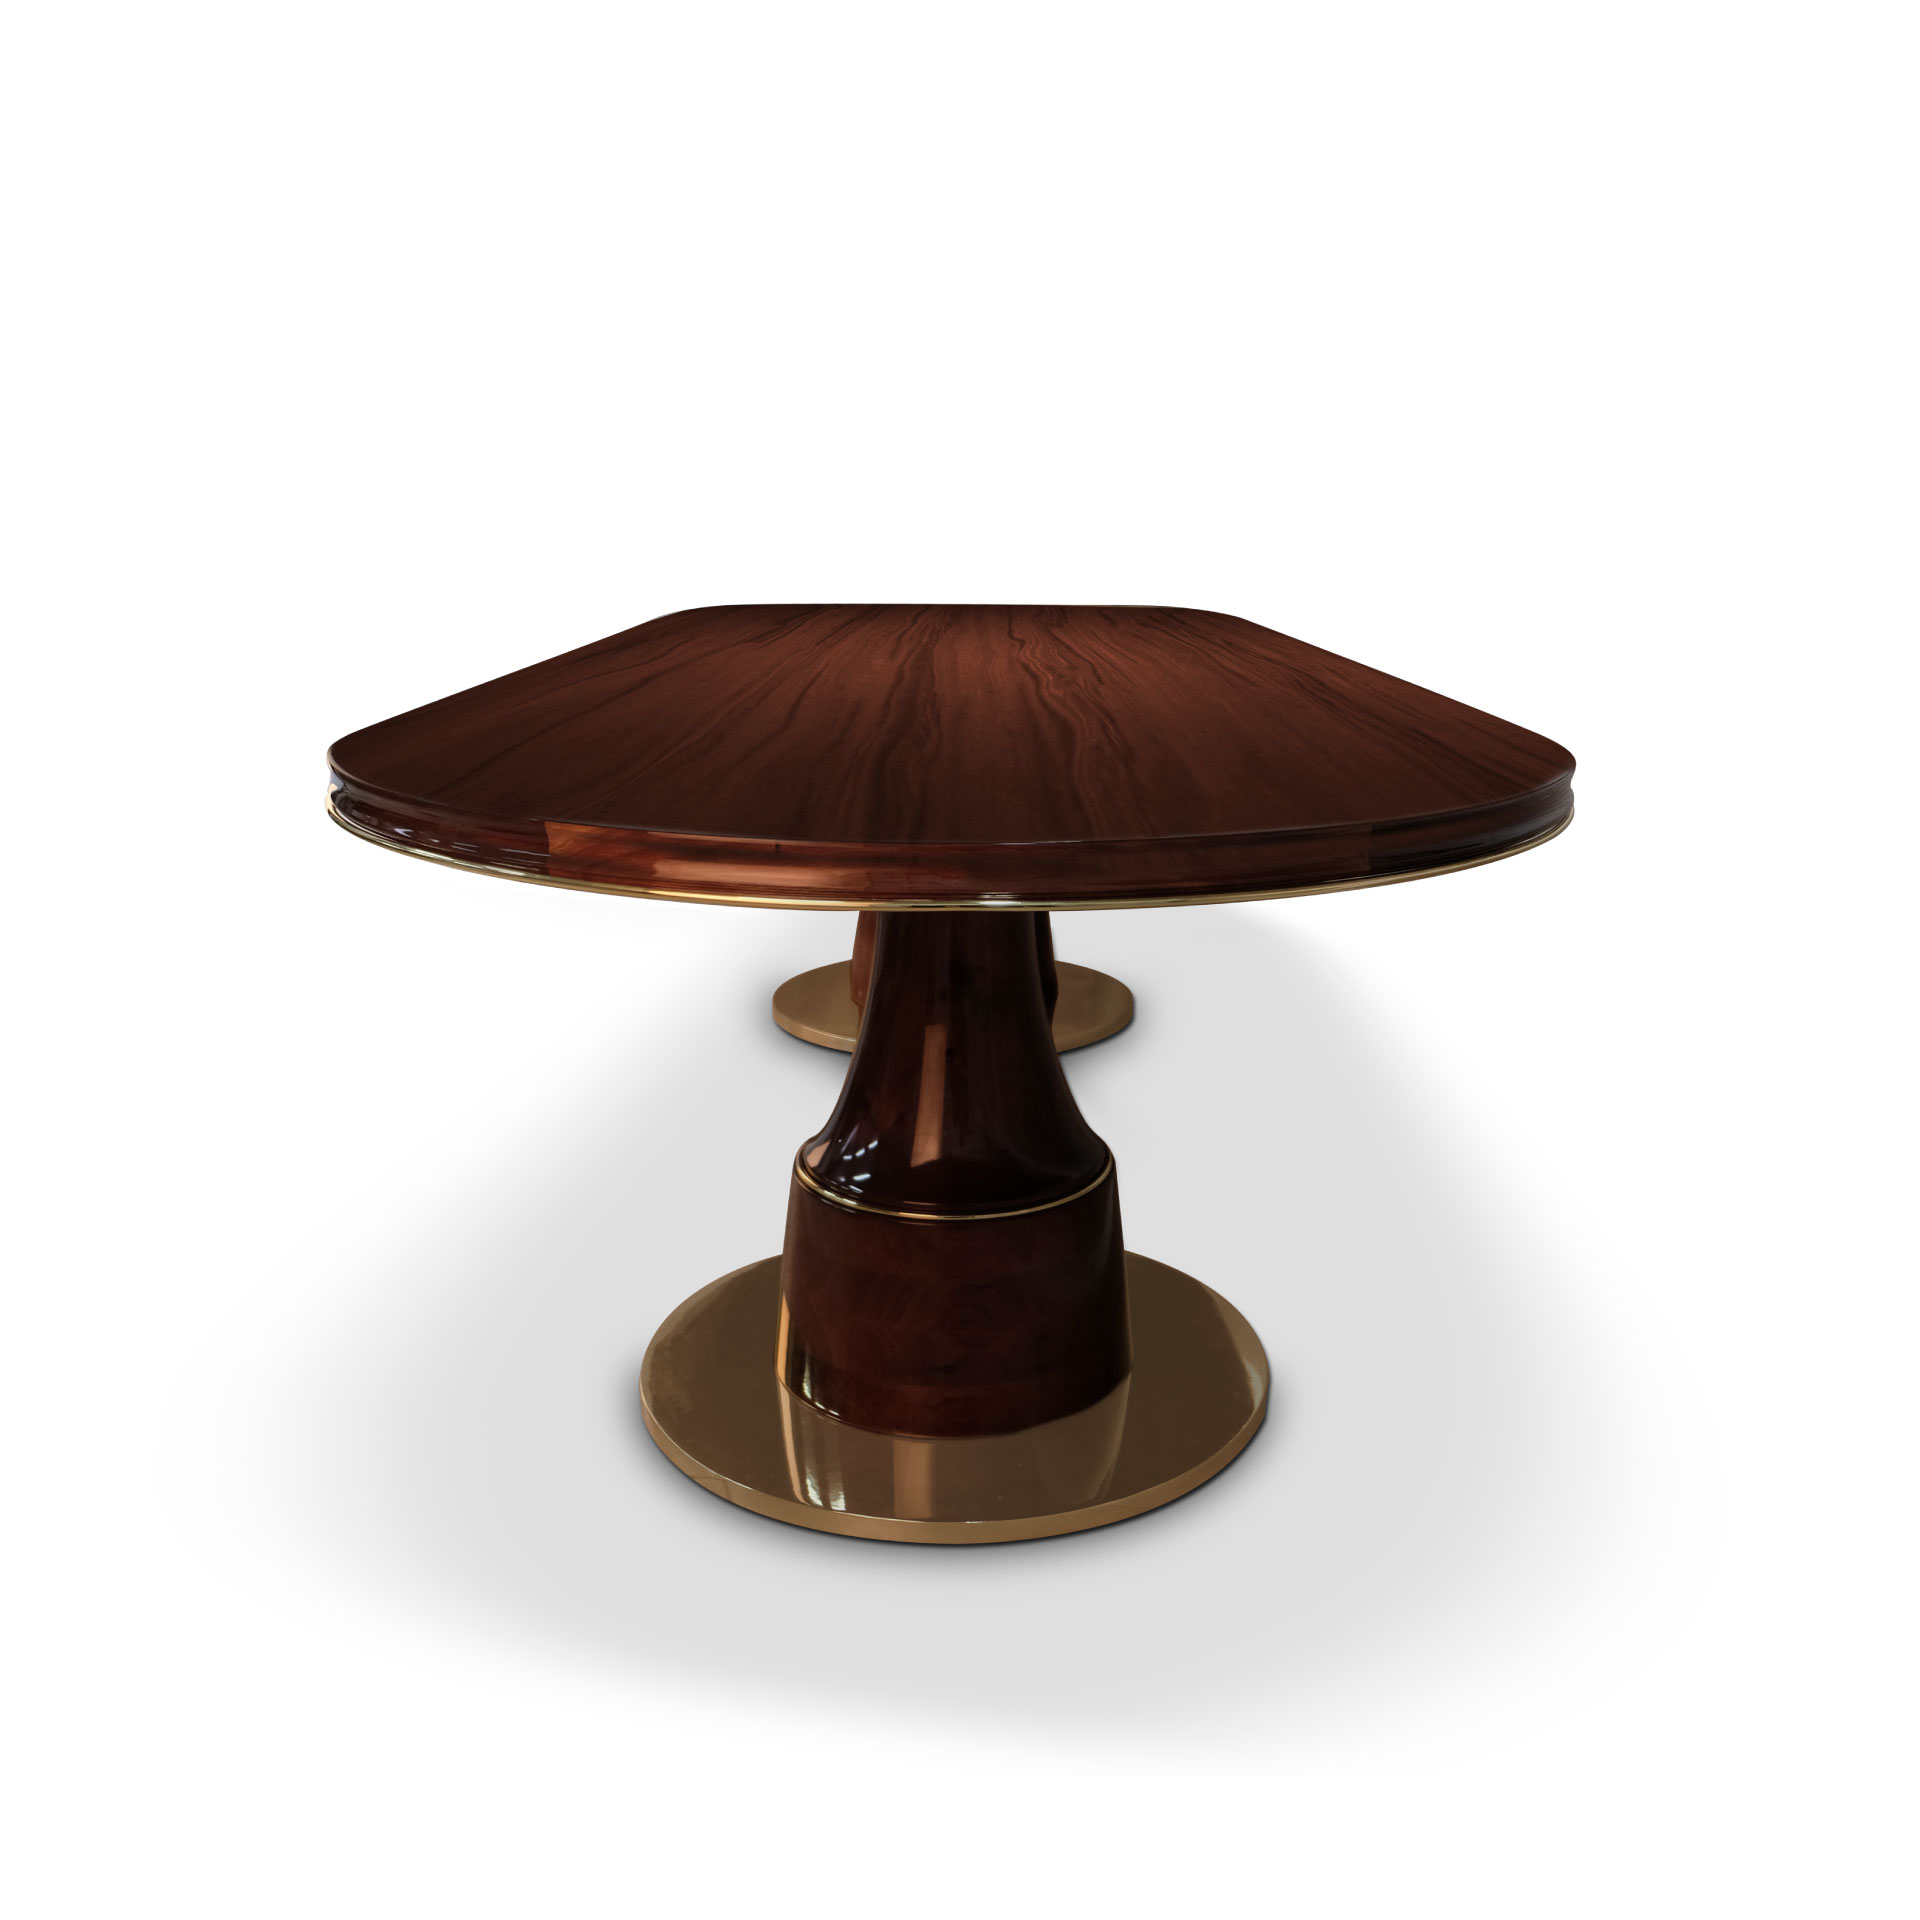 Buck oval dining table